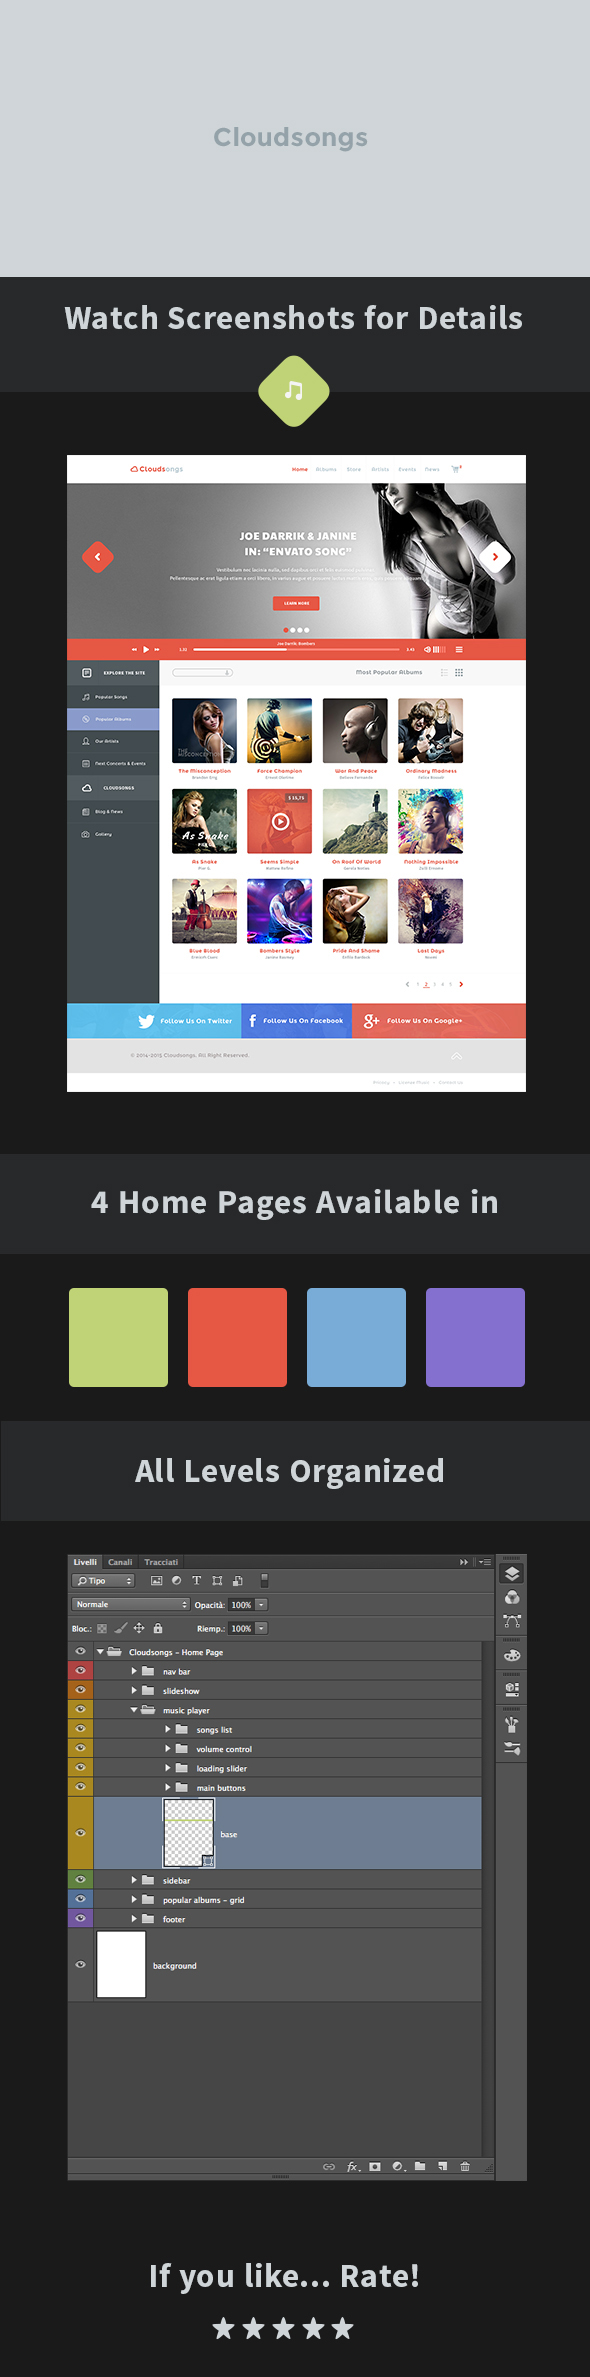 Cloudsongs - Music E-Commerce Template - 1